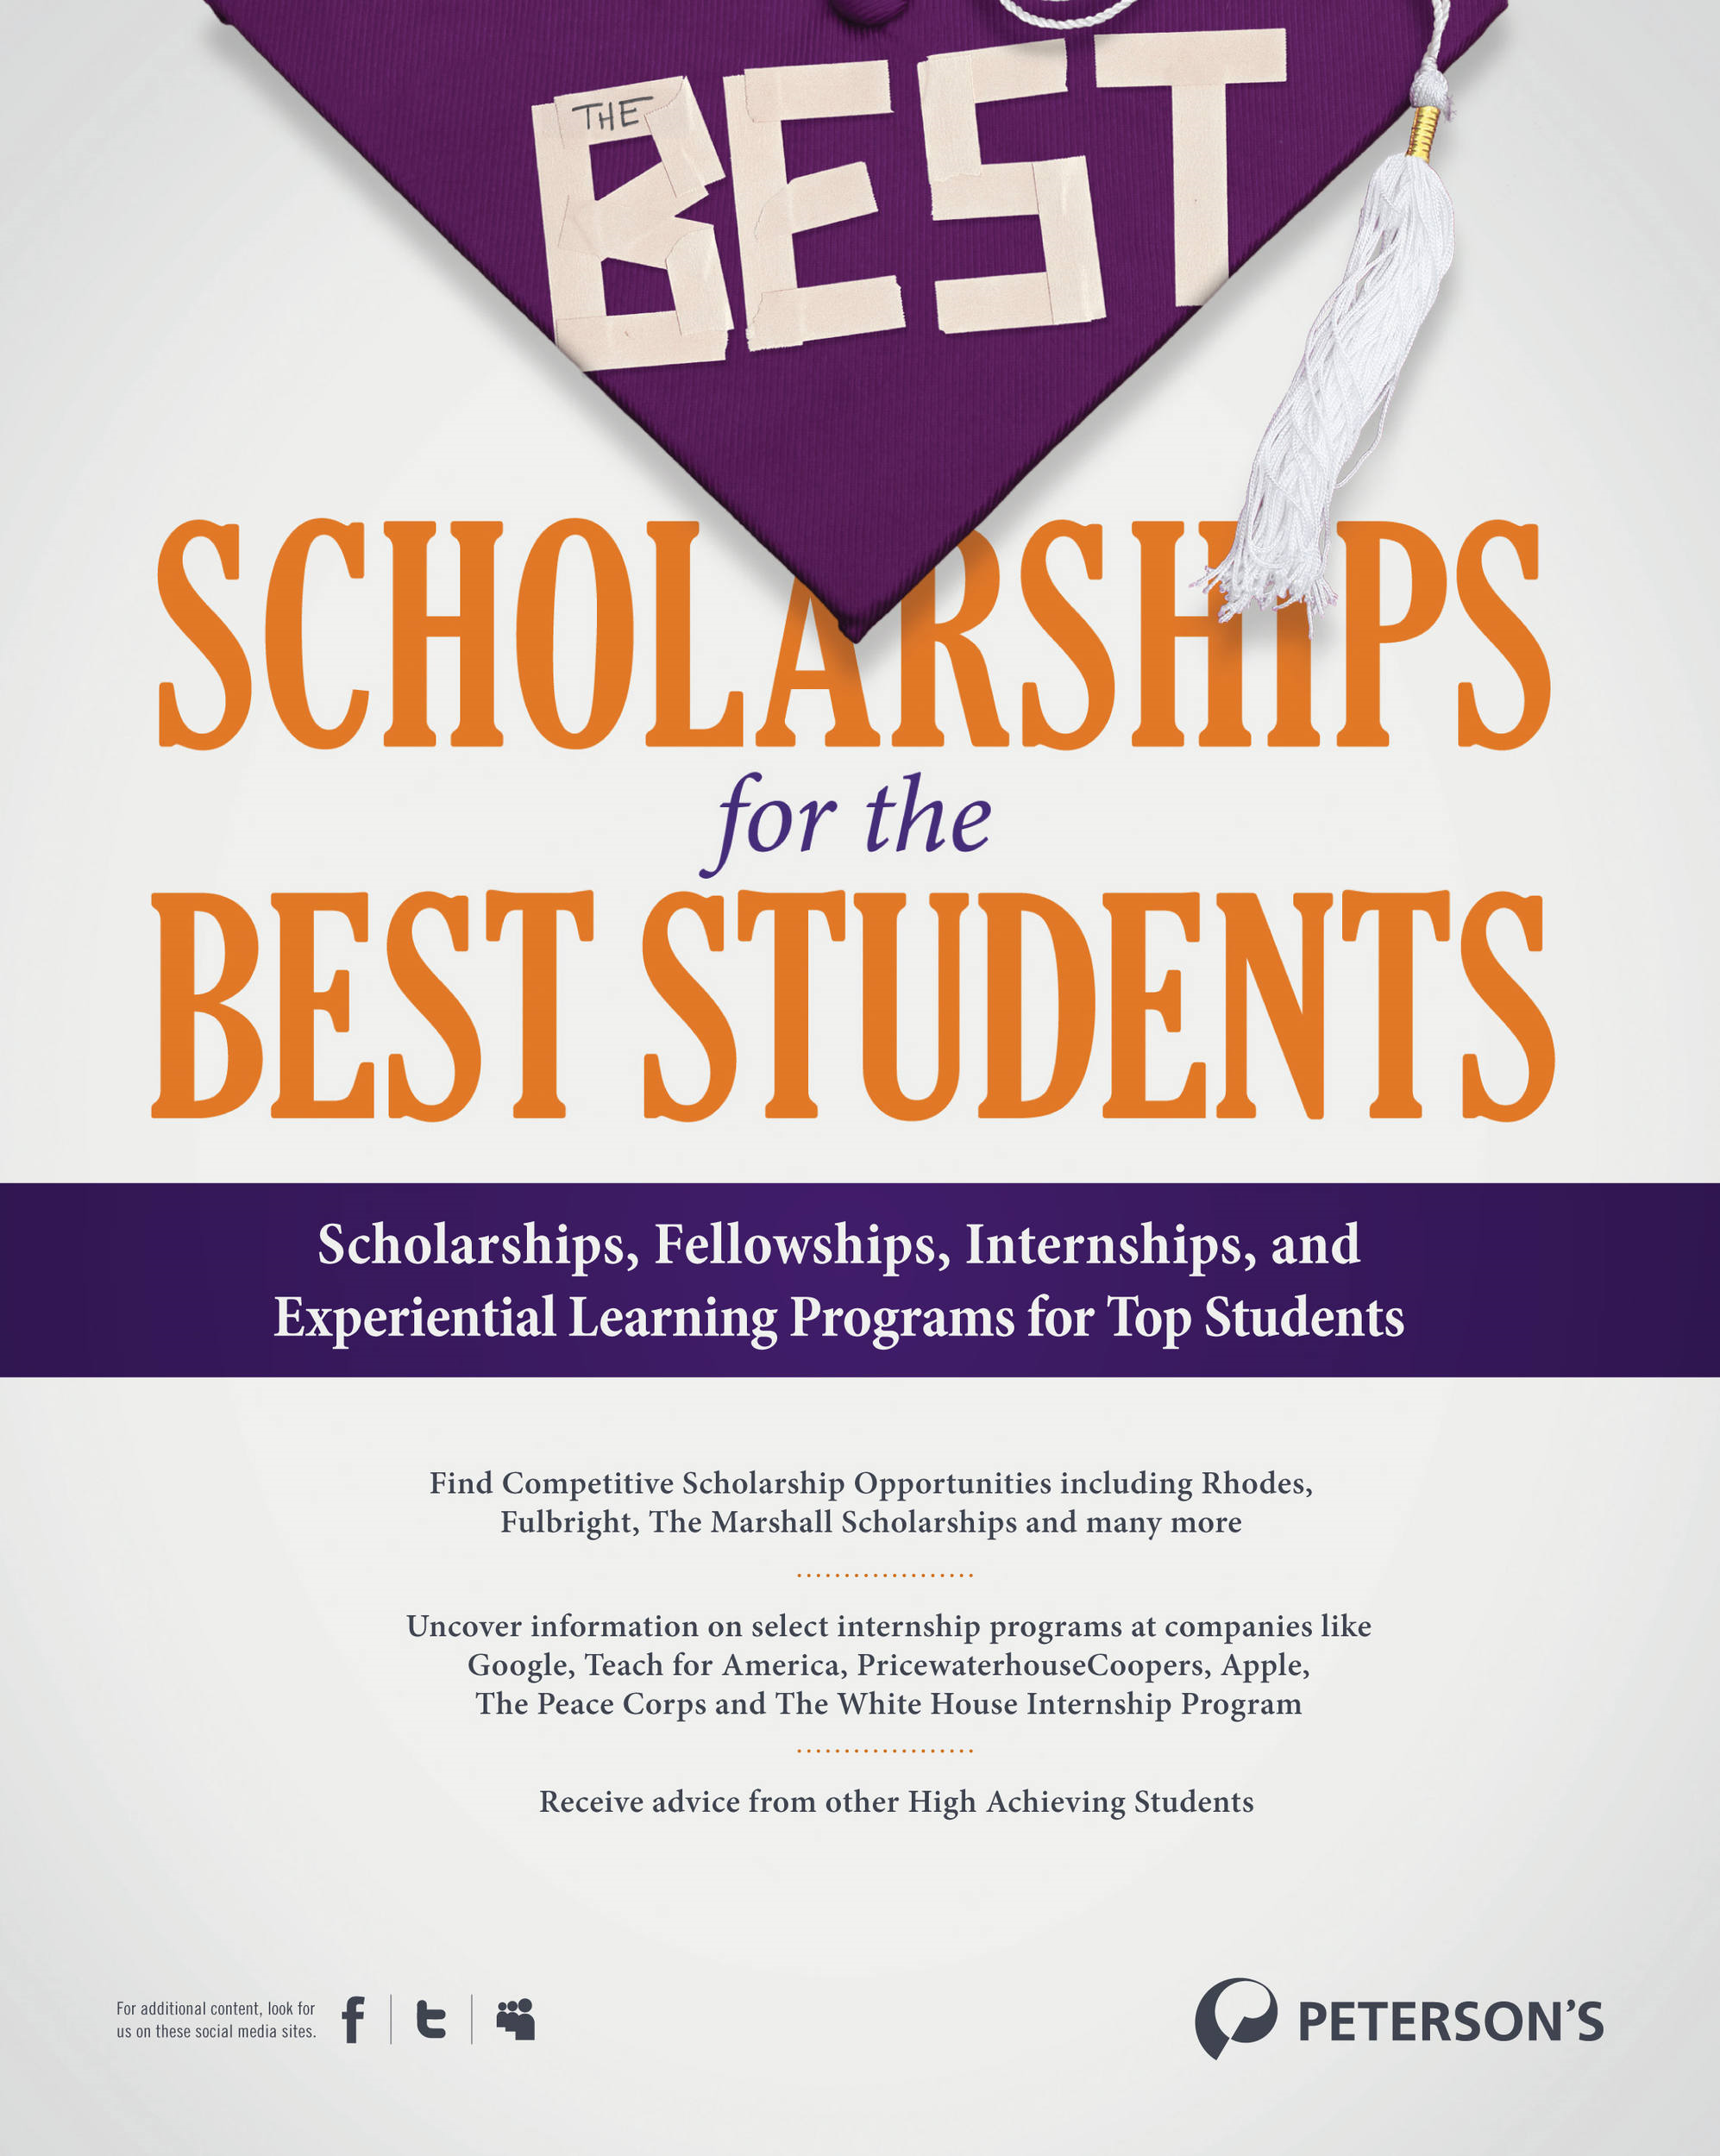 The Best Scholarships for the Best Students--Obtaining Strong Letters of Recommendation